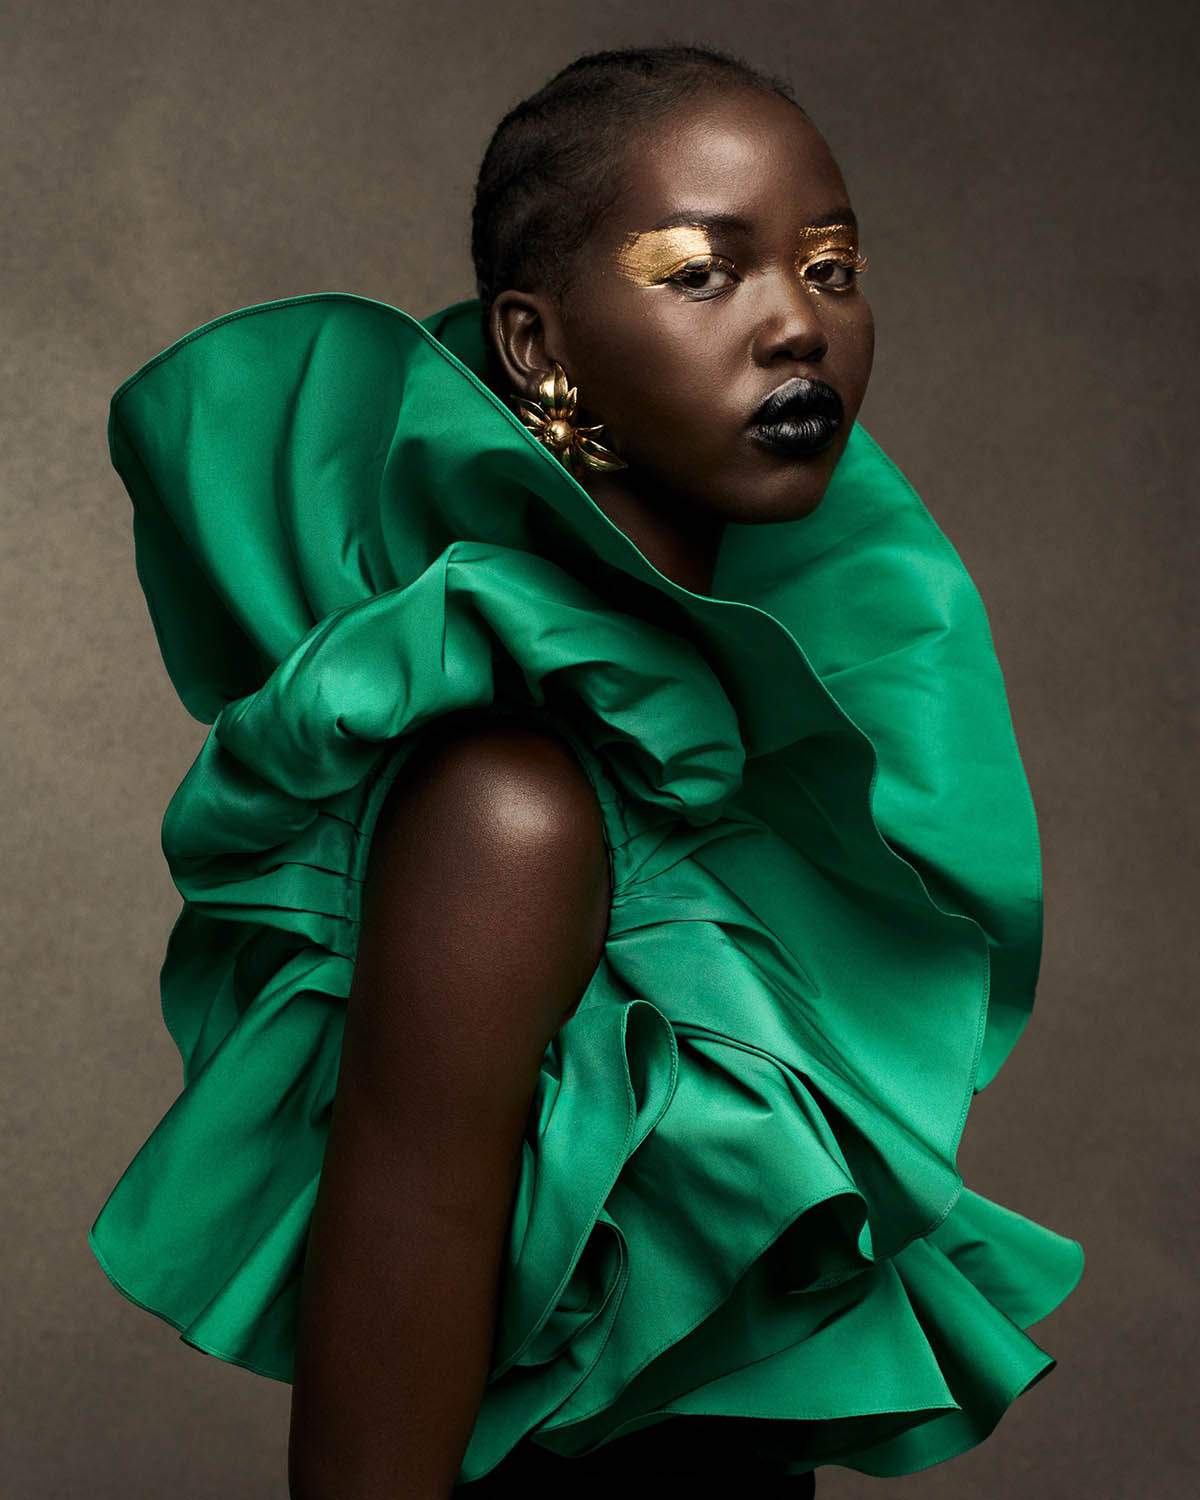 Adut Akech and Imaan Hammam by Ethan James Green for Vogue US May 2021